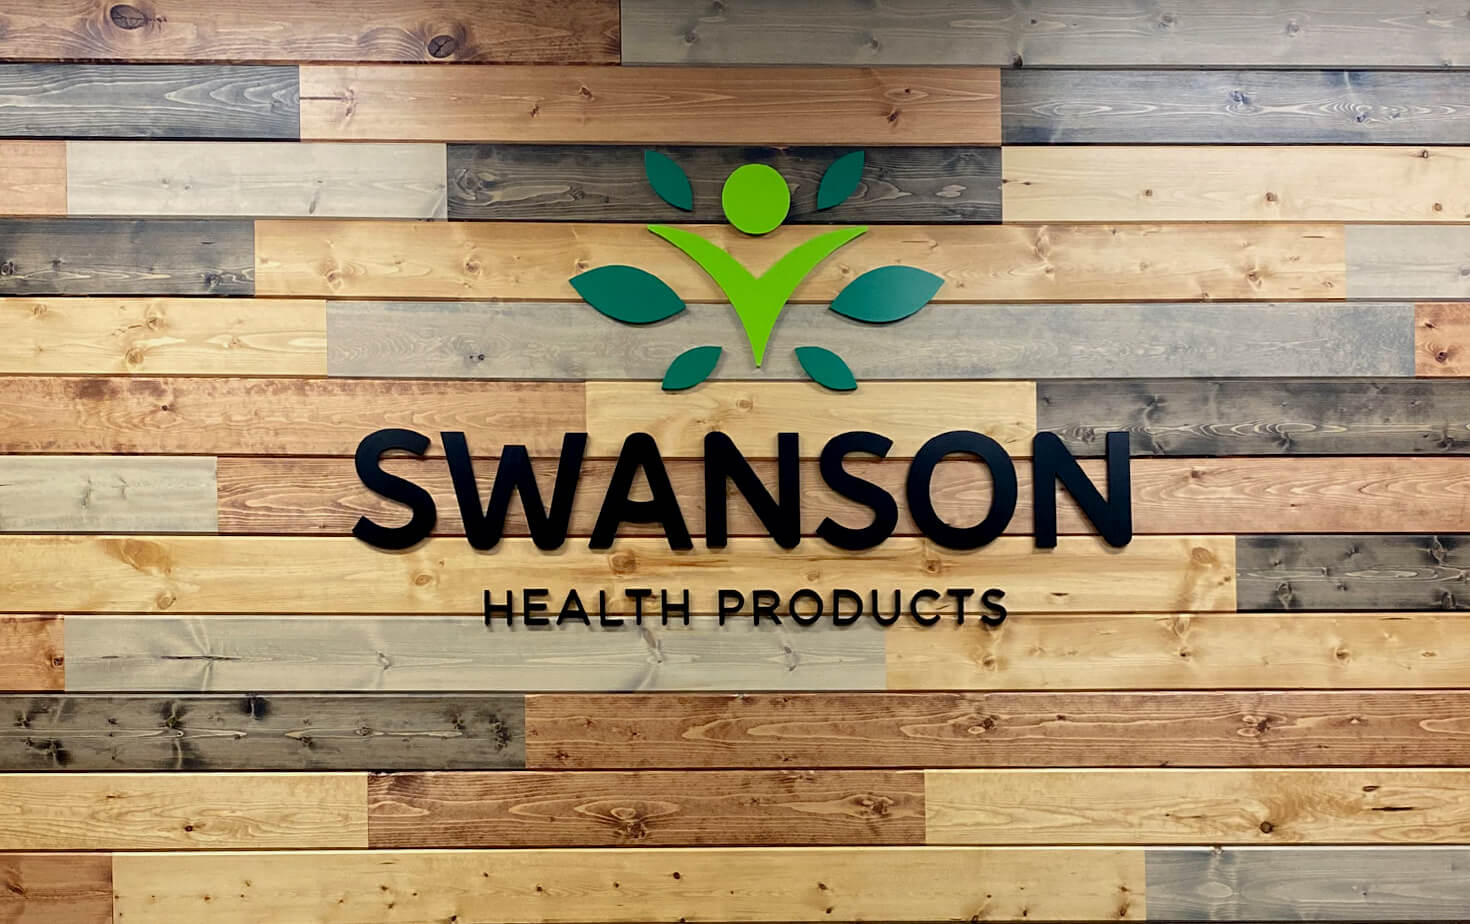 Swanson Health Products Interior Logo on Wood Wall